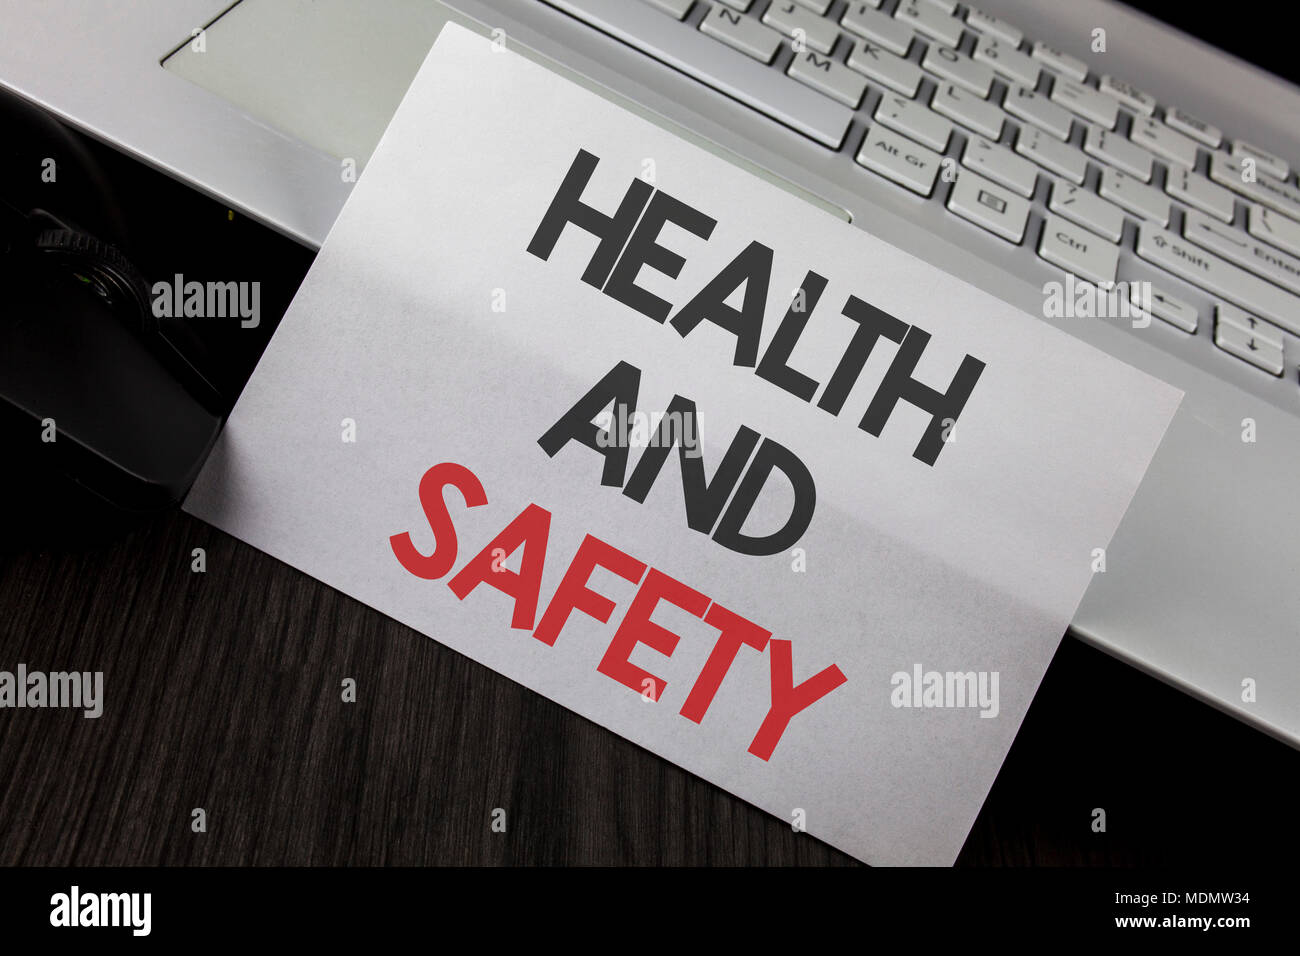 Maintenance Of Industrial Health And Safety Standard Stock Photos Amp Maintenance Of Industrial